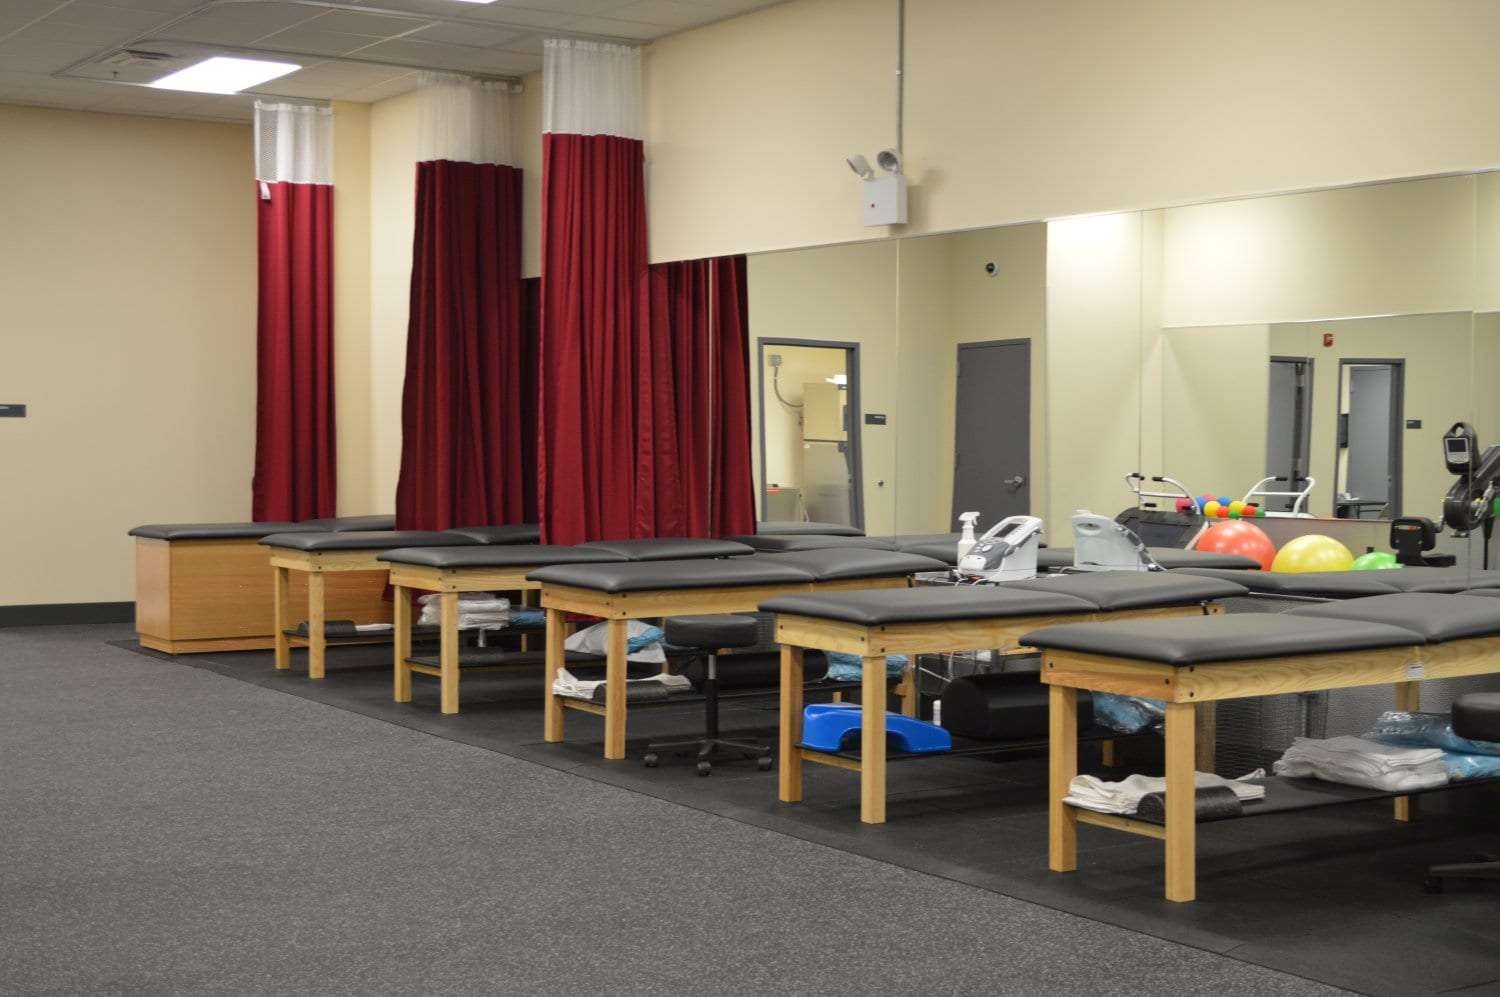 Here is an image of six well maintained stretch beds at our physical therapy clinic in Parsippany, New Jersey. These beds are great for increasing flexibility.